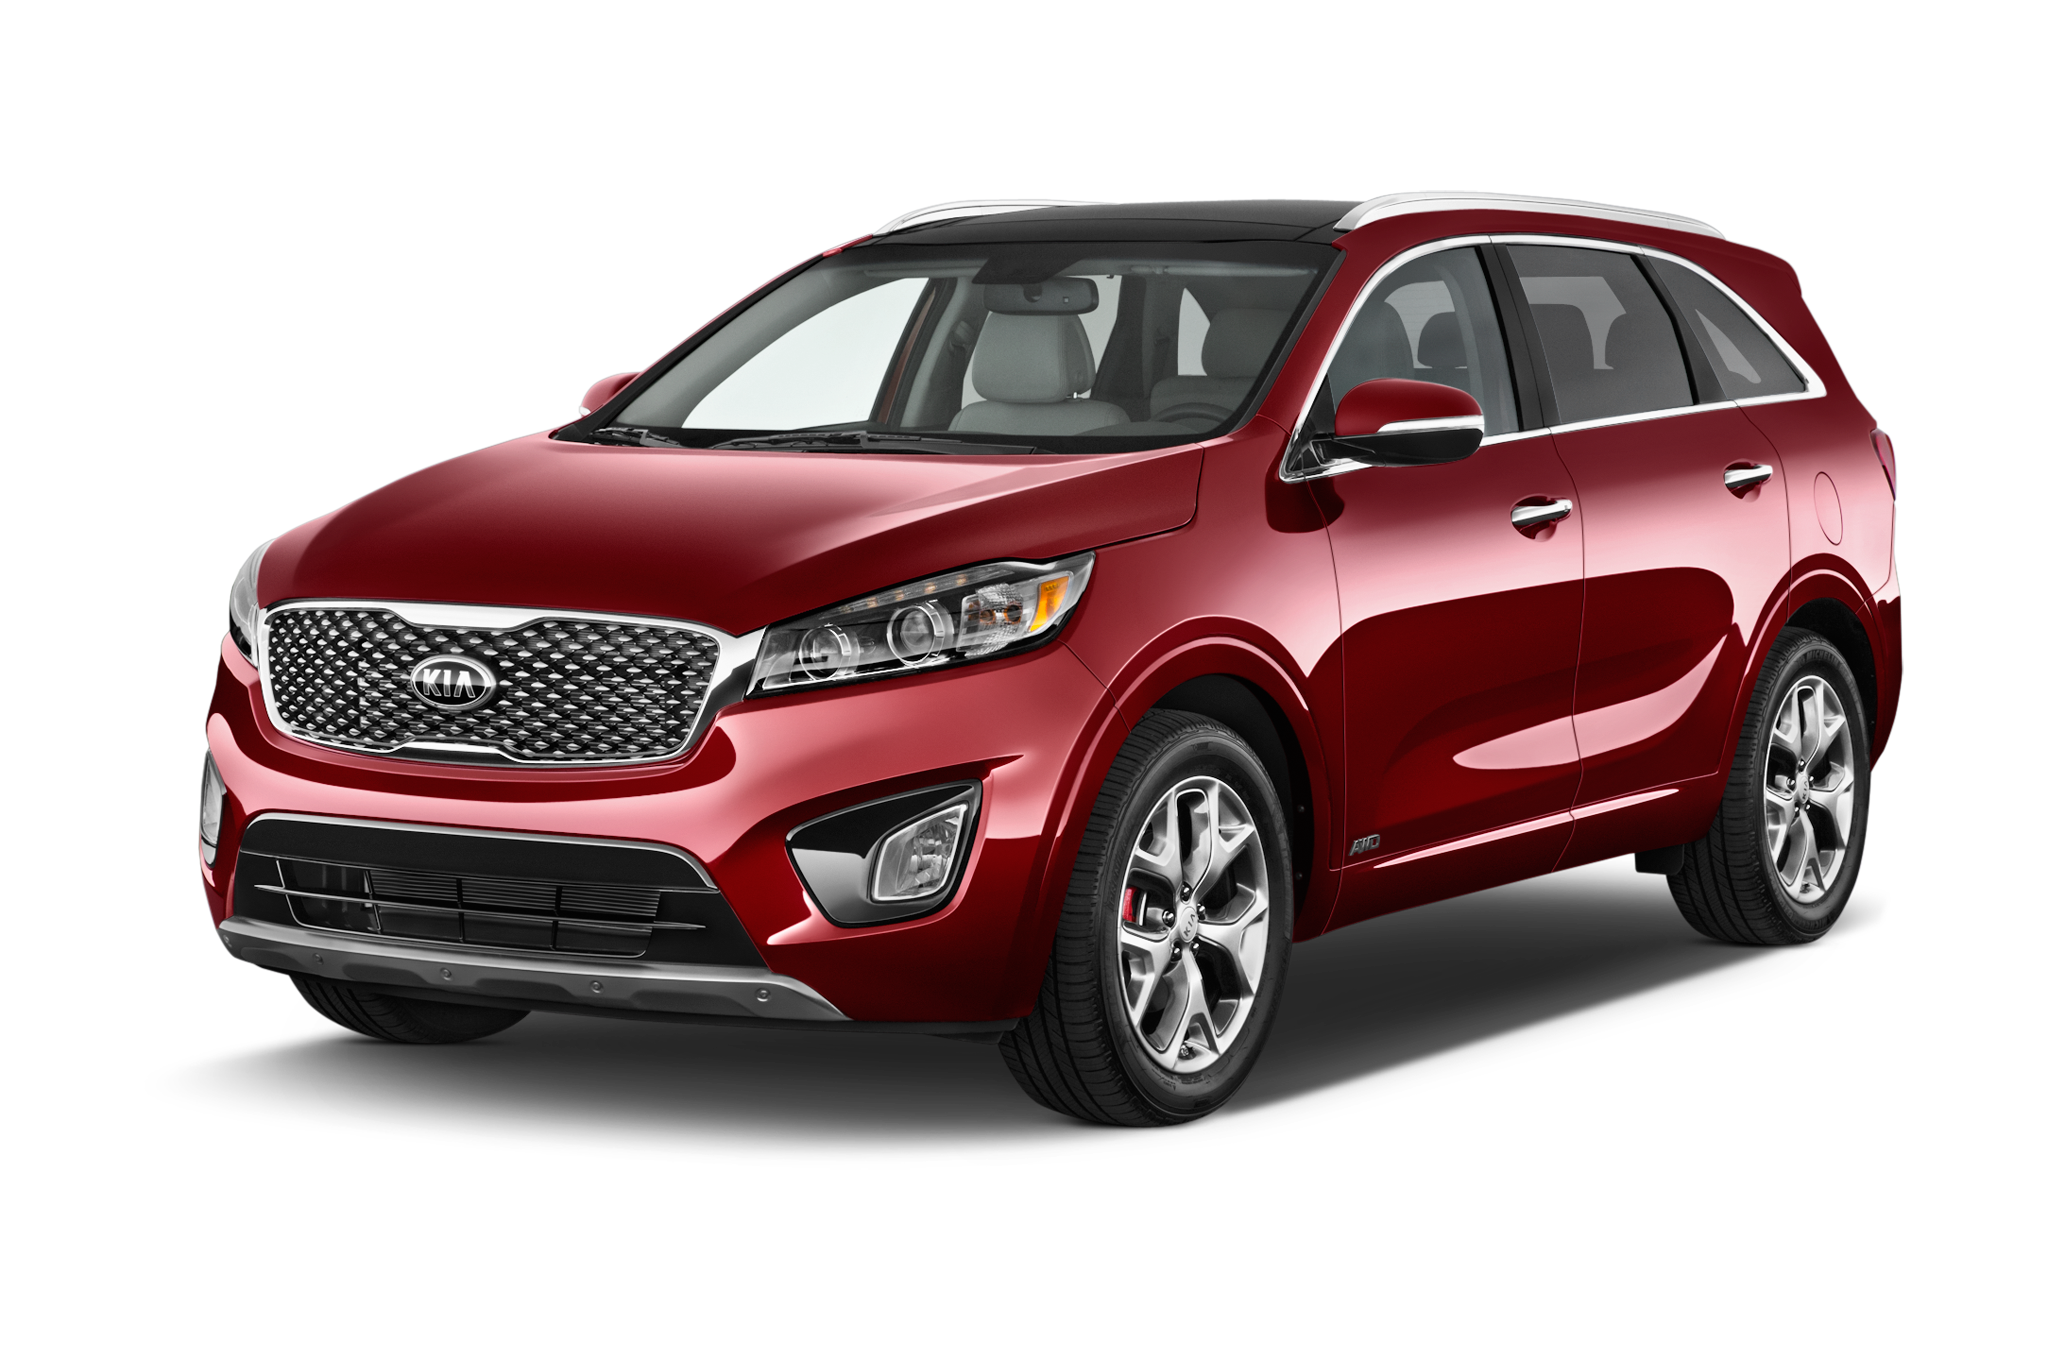 2016 kia sorento review. Black Bedroom Furniture Sets. Home Design Ideas